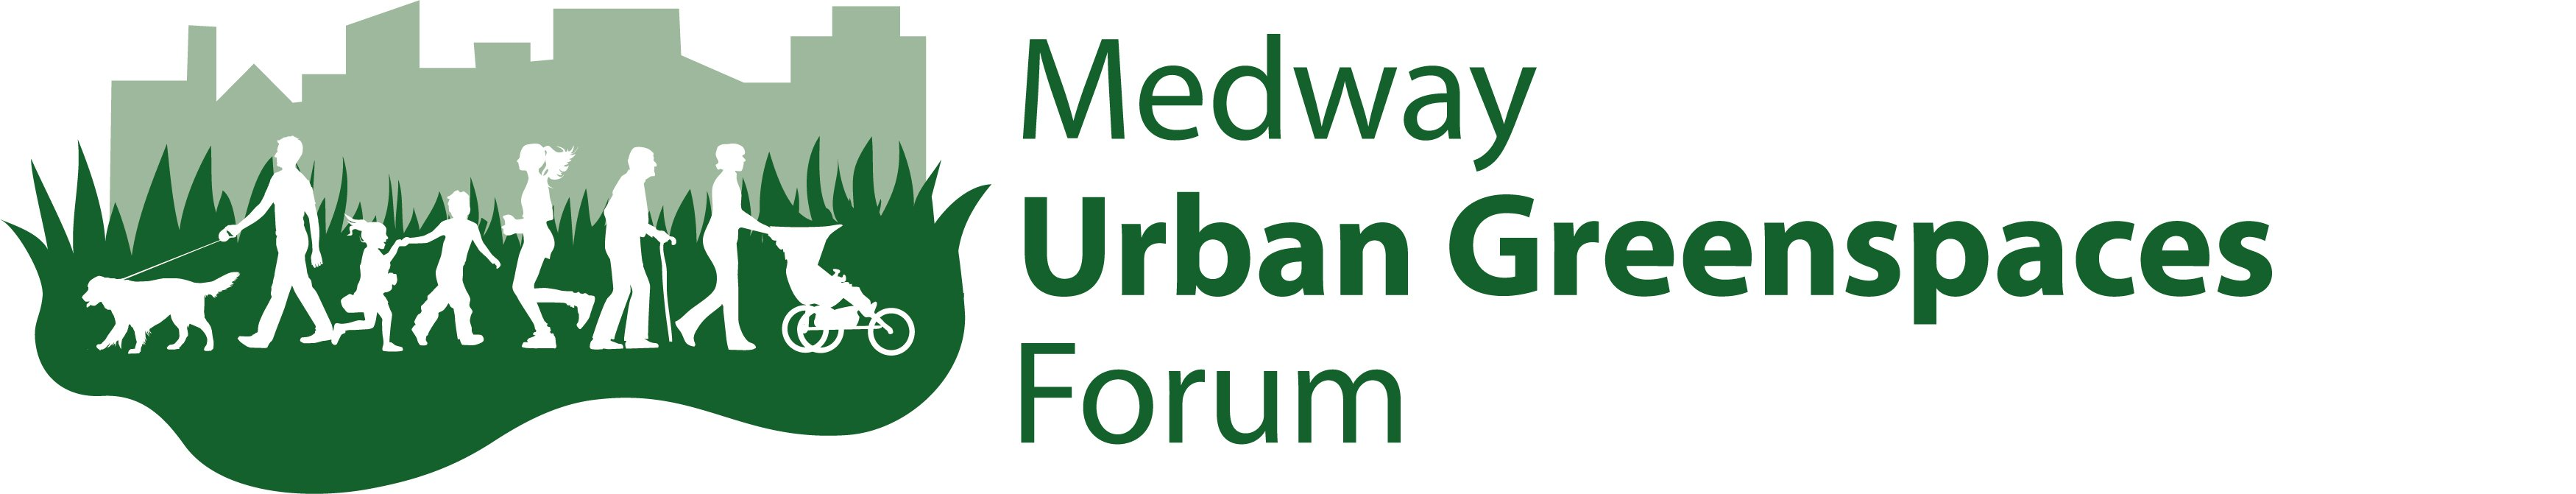 Medway Urban Greenspaces Forum